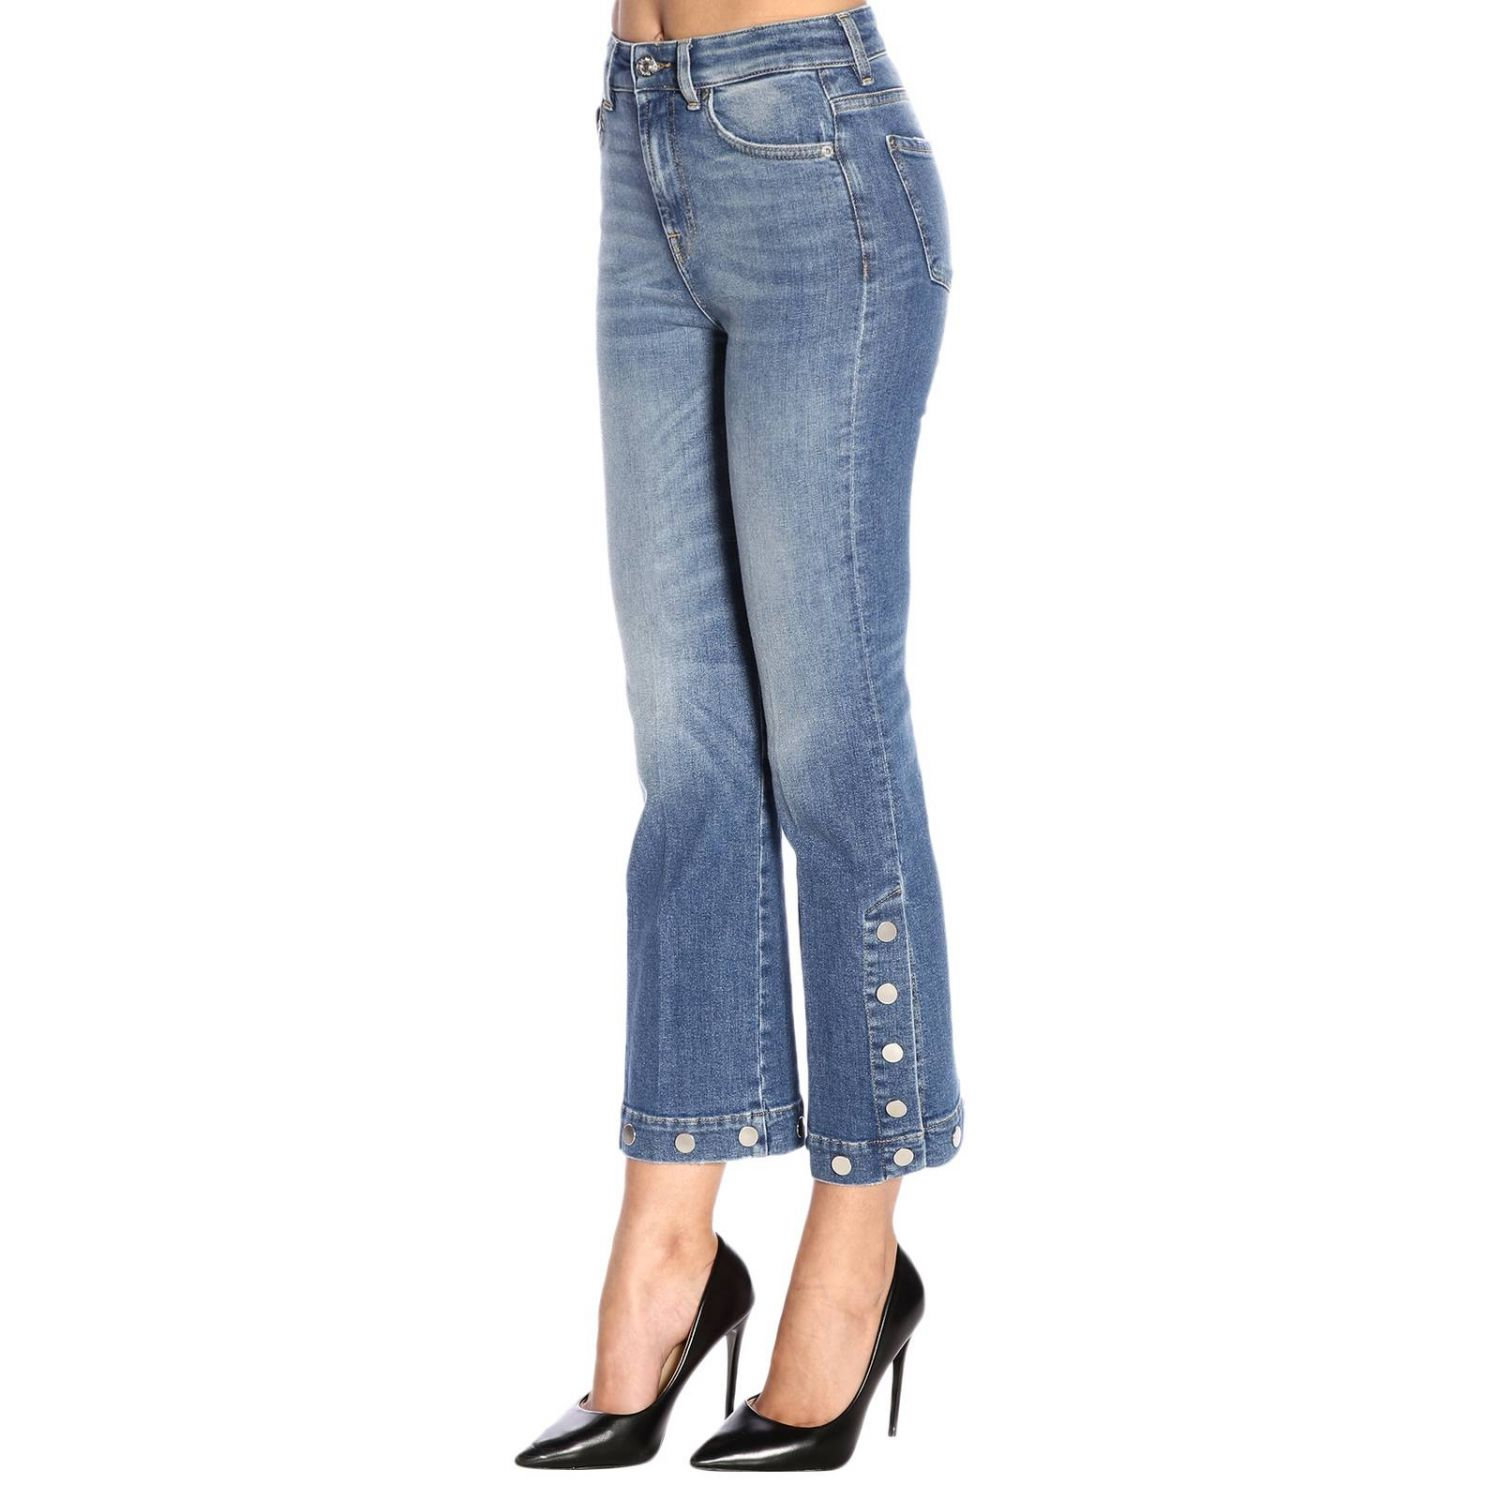 Jeans 7 For All Mankind a 5 tasche stretch used a trombetta blue 2